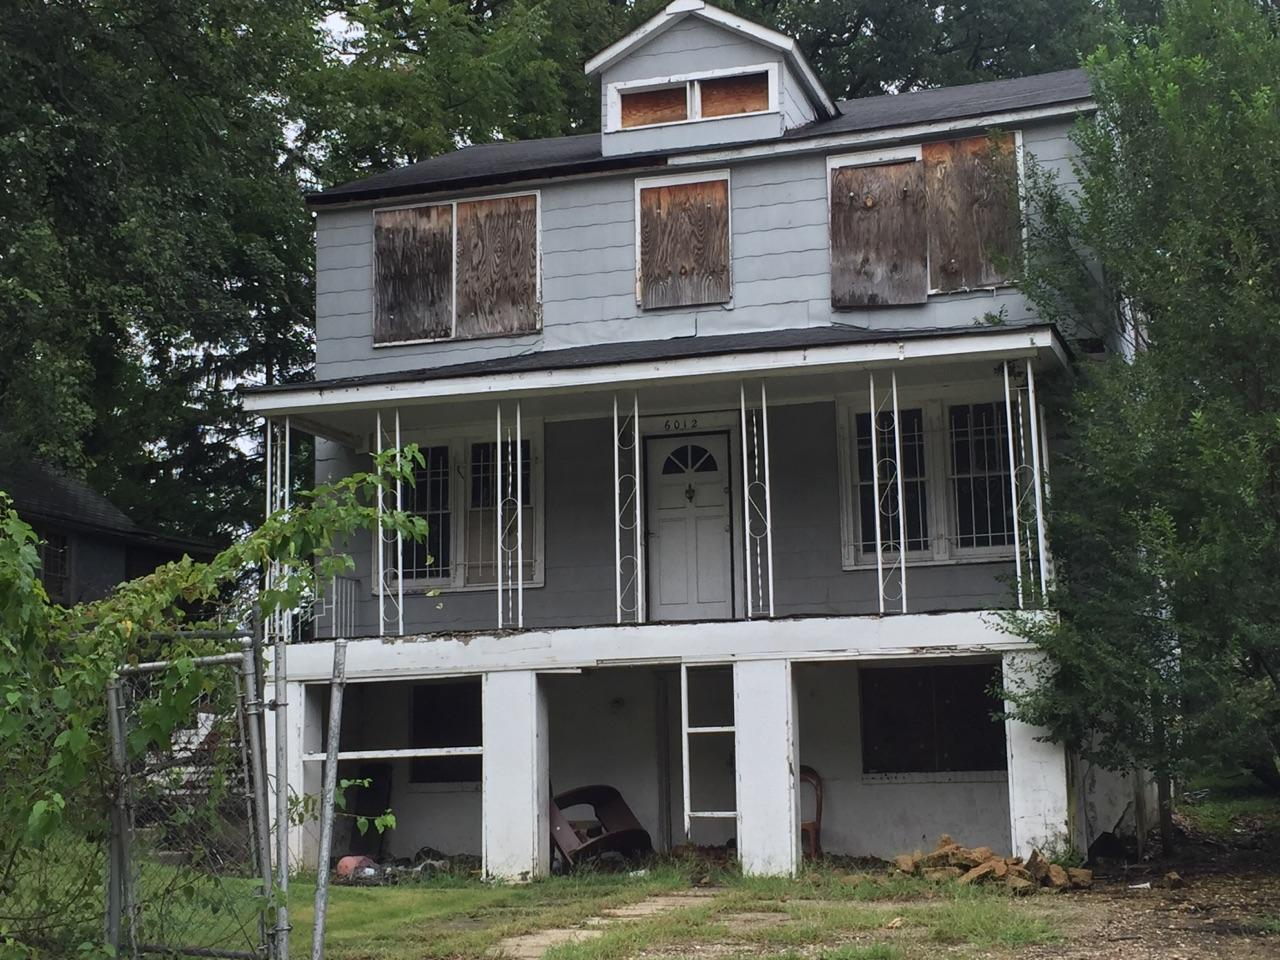 Sell My House that Needs Repairs